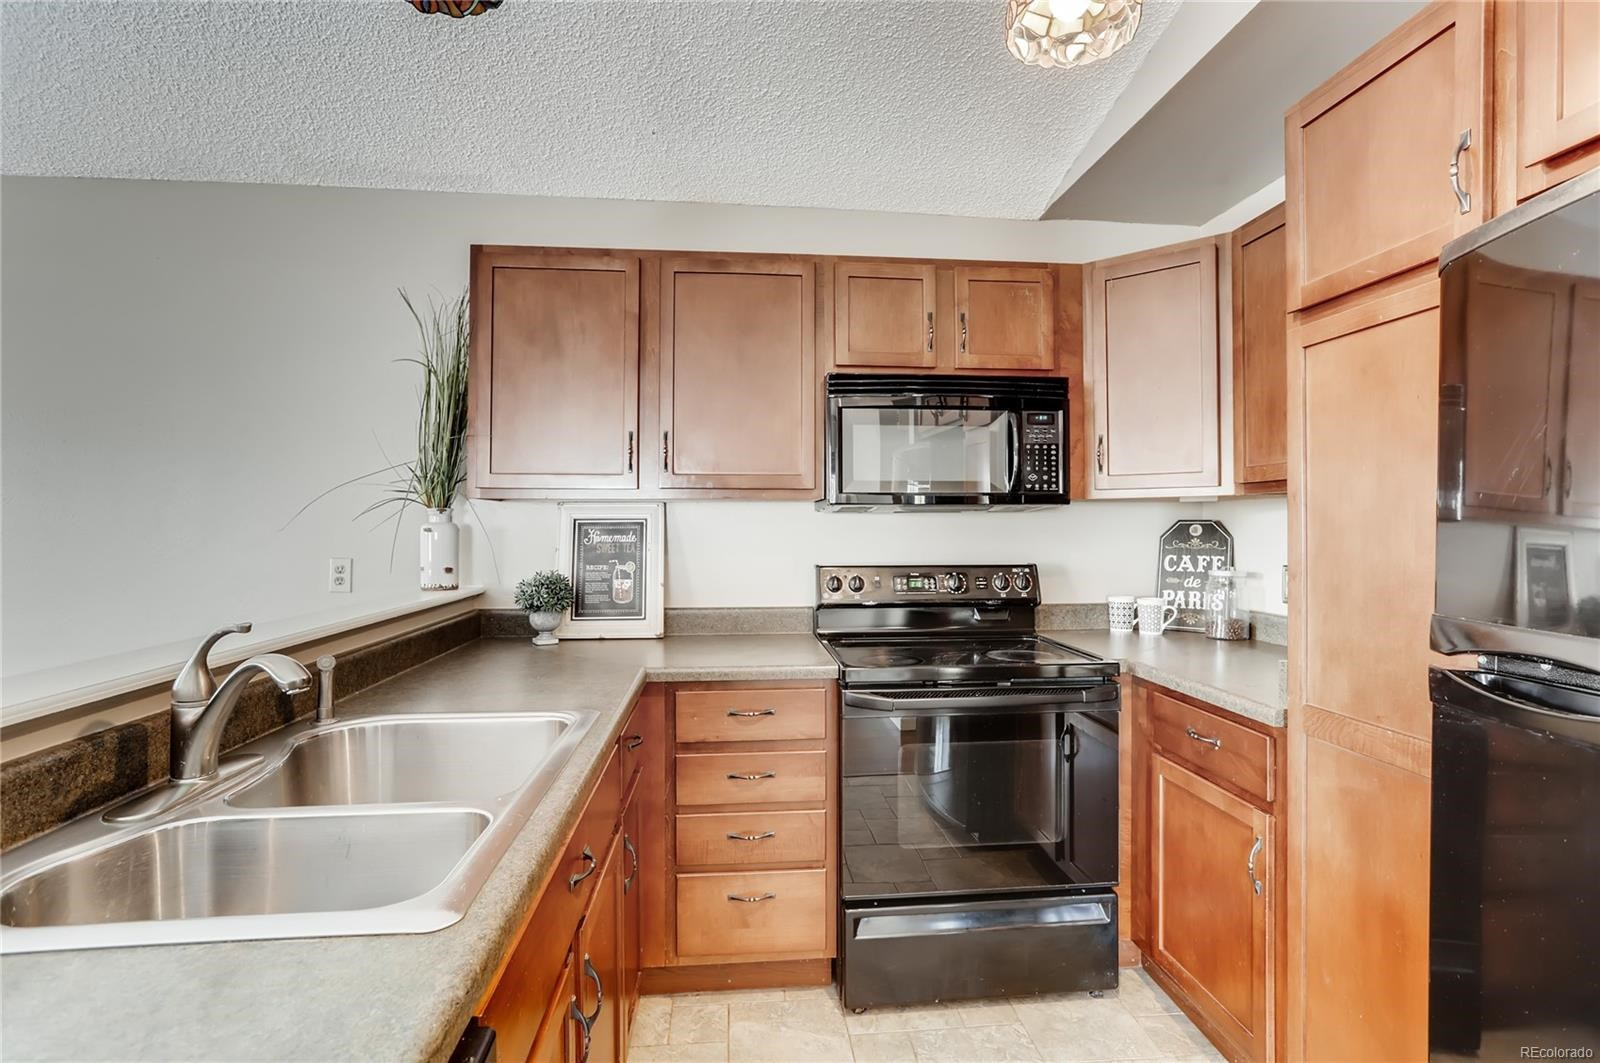 MLS# 5062713 - 5 - 18258 W 58th Place #1, Golden, CO 80403